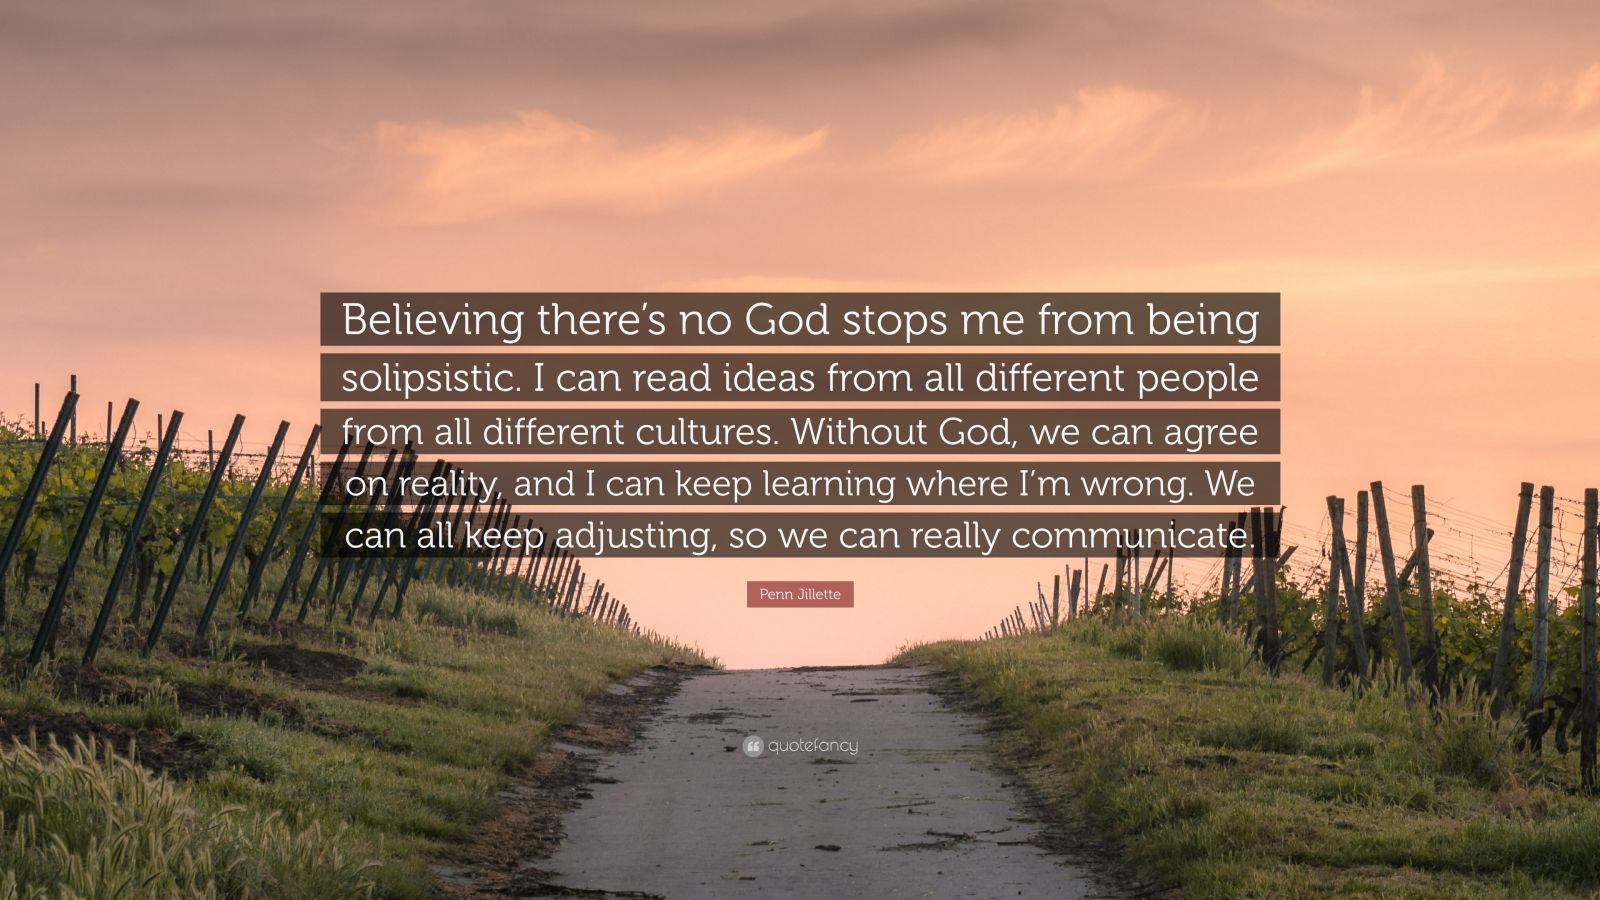 """Penn Jillette Quote: """"Believing there's no God stops me from being solipsistic. I can read ideas from all different people from all different cultures. Without God, we can agree on reality, and I can keep learning where I'm wrong. We can all keep adjusting, so we can really communicate."""""""